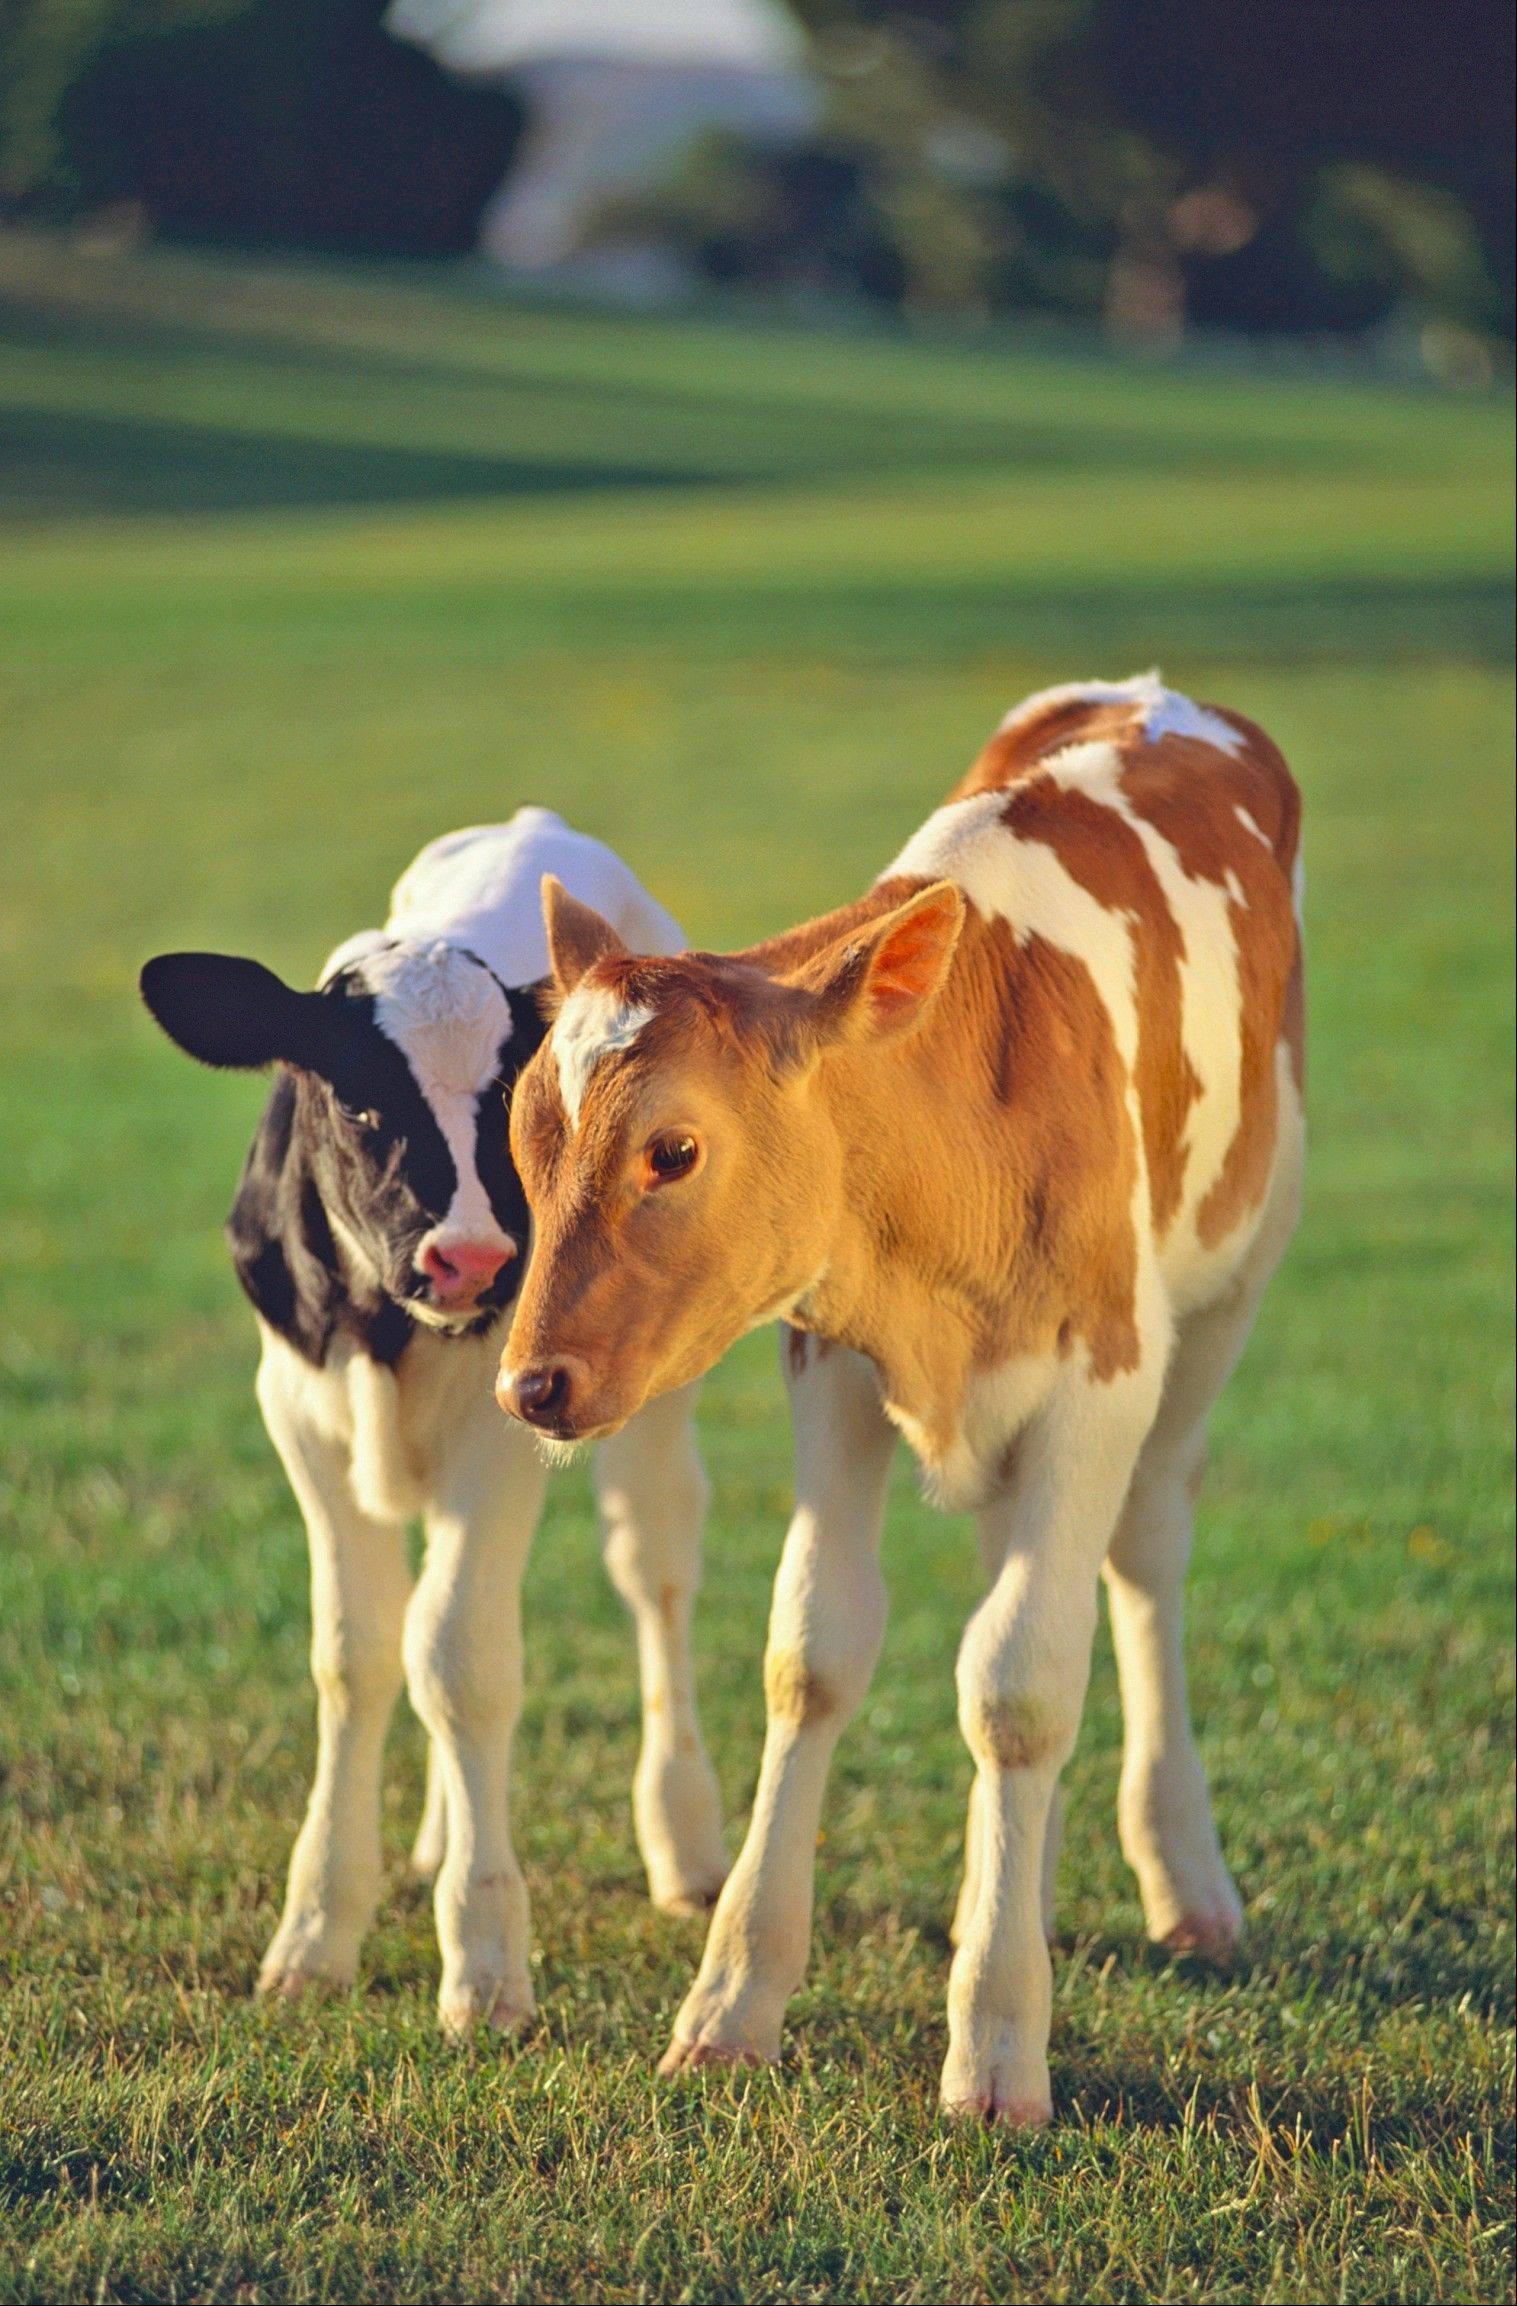 Spend a day in the country, experience the birth of a calf and see how cheese is made. Join the Schaumburg Township District Library for a day trip on Thursday, July 11, to Fair Oak Farm in Indiana. Register now at (847) 923-3347.